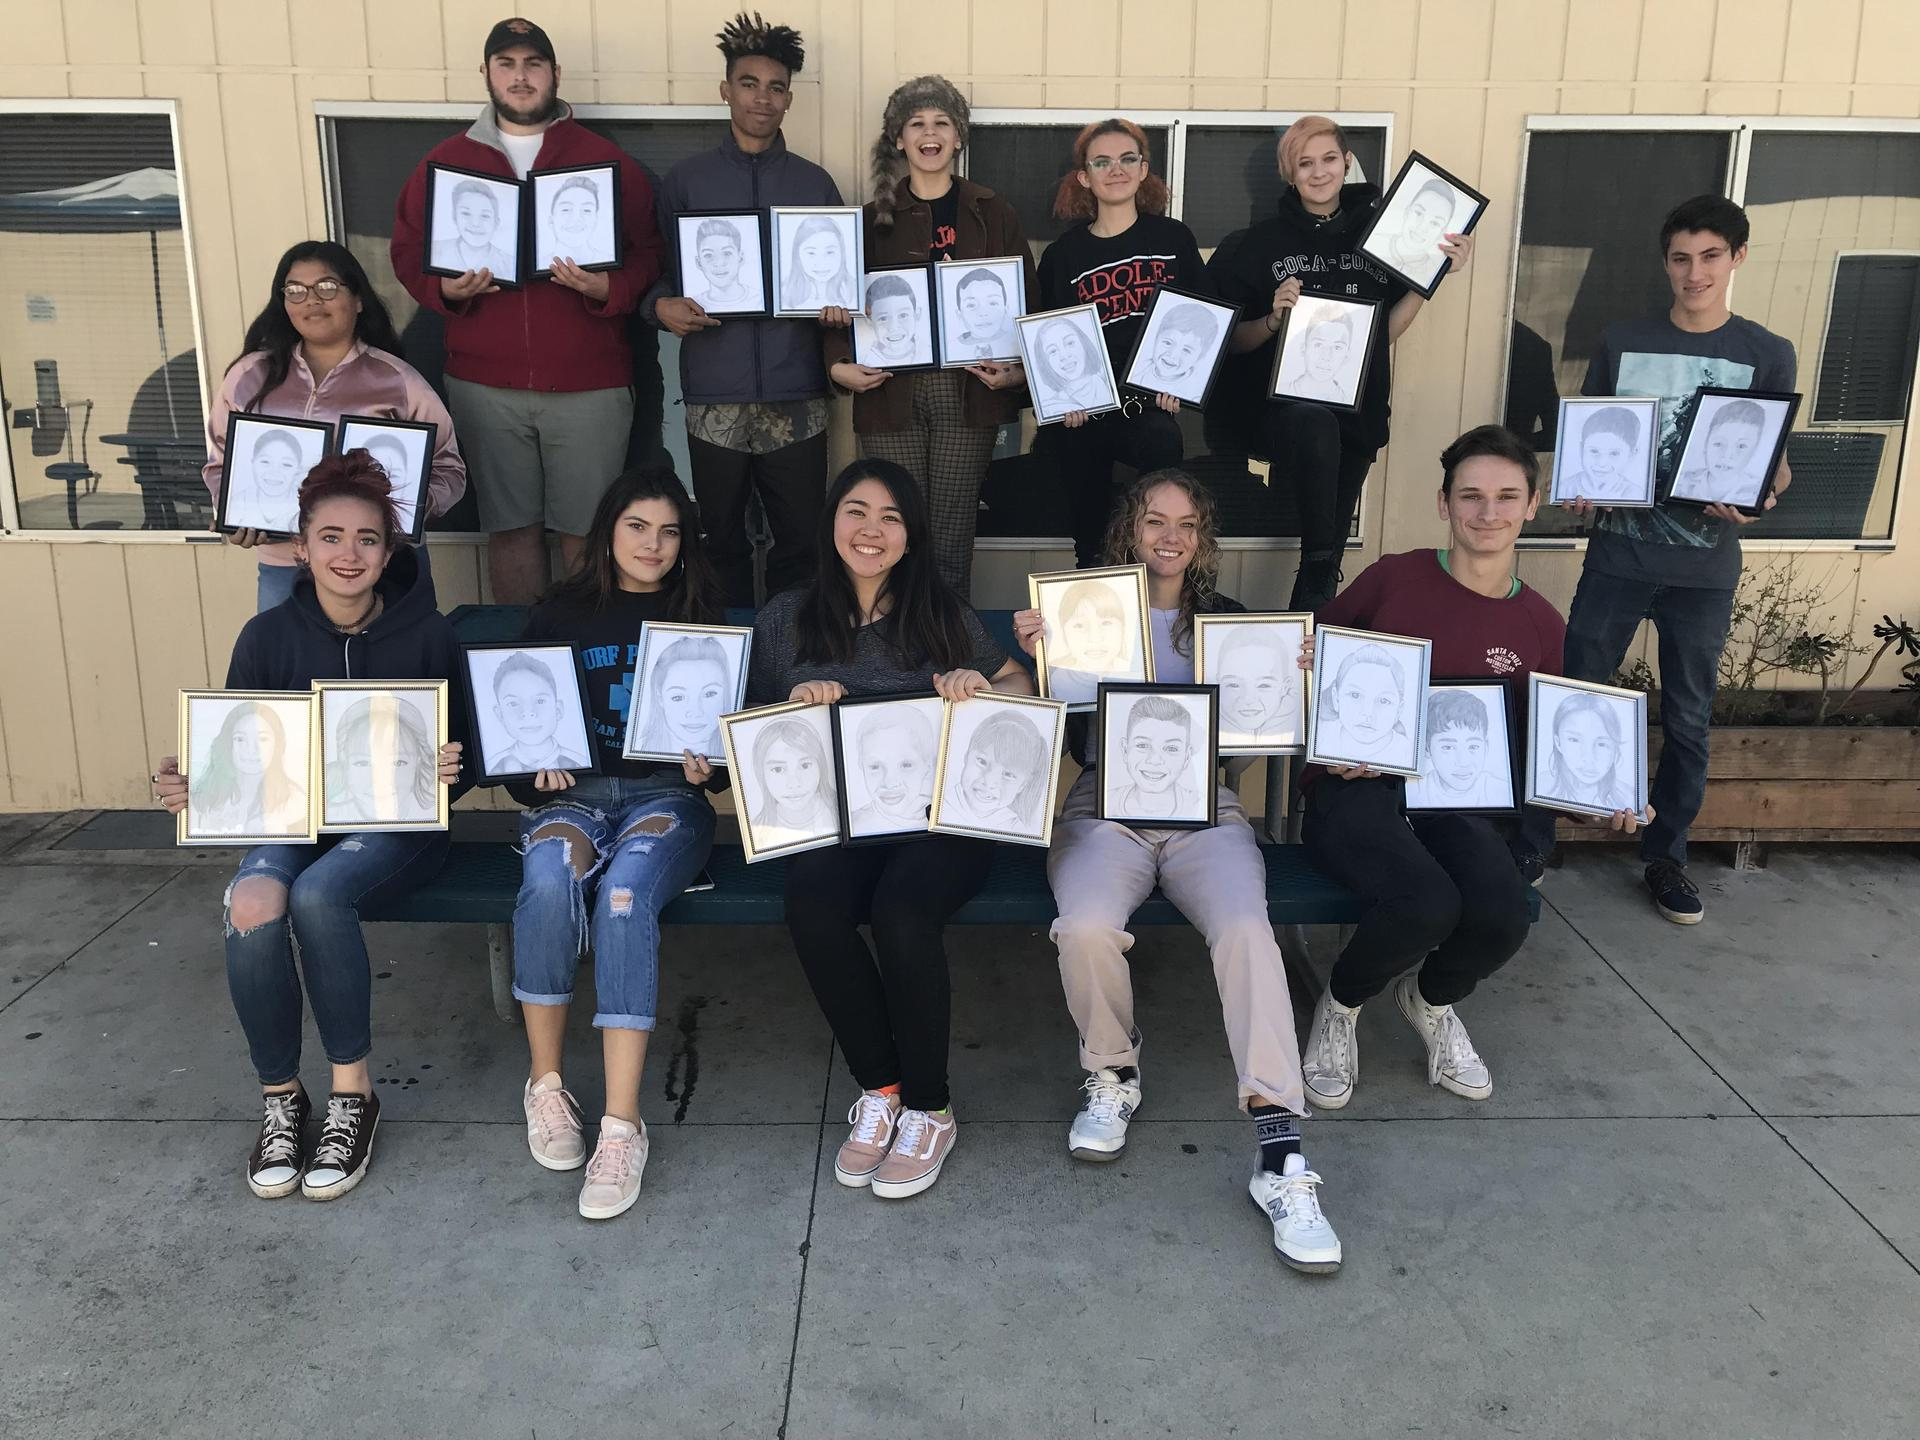 Students Participate in Smile Proejct